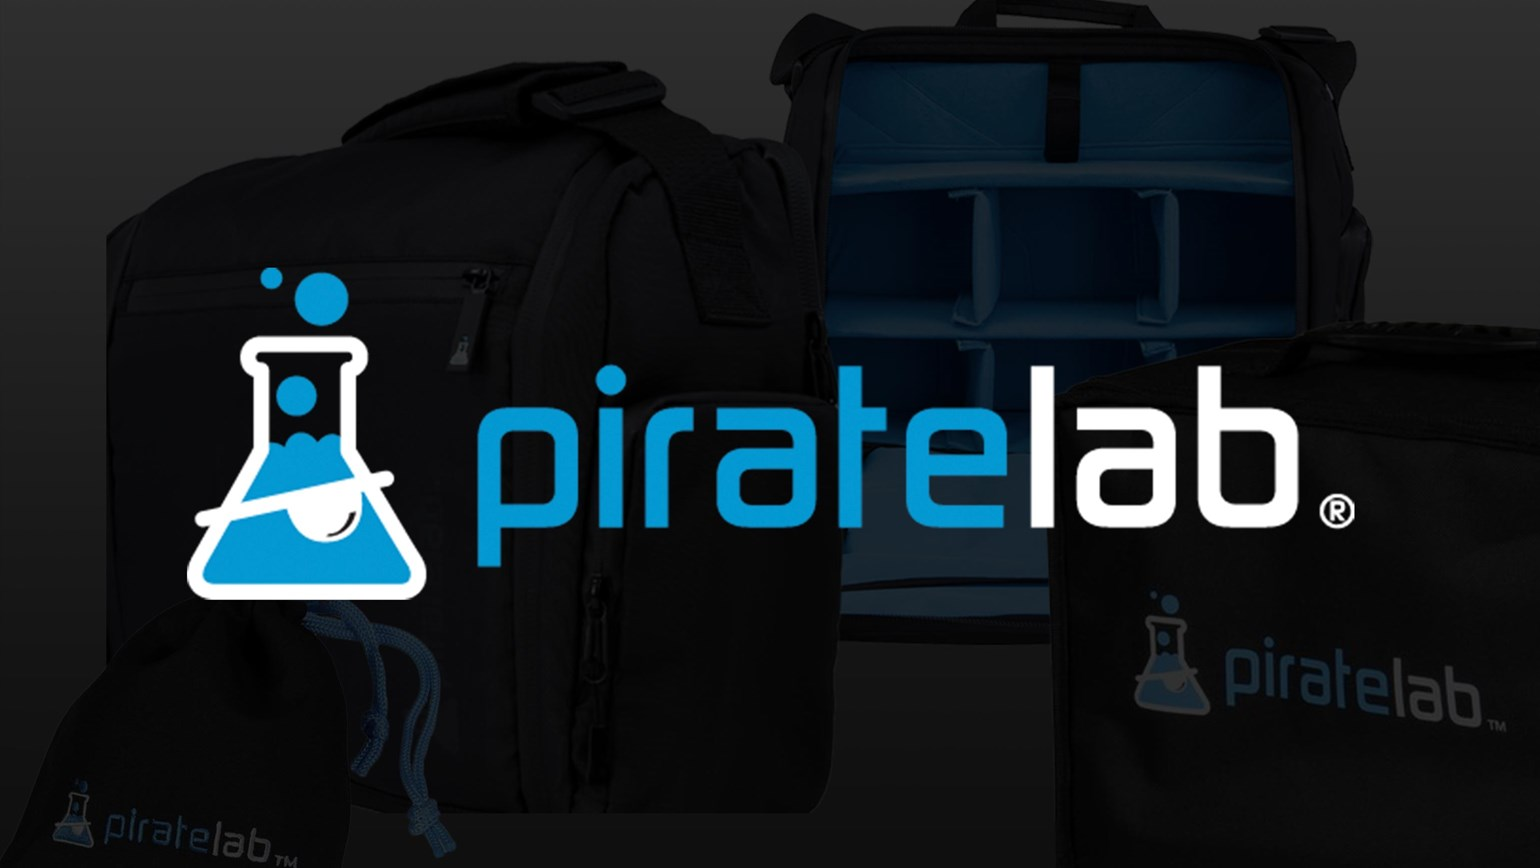 Pirate Lab Products Available to List